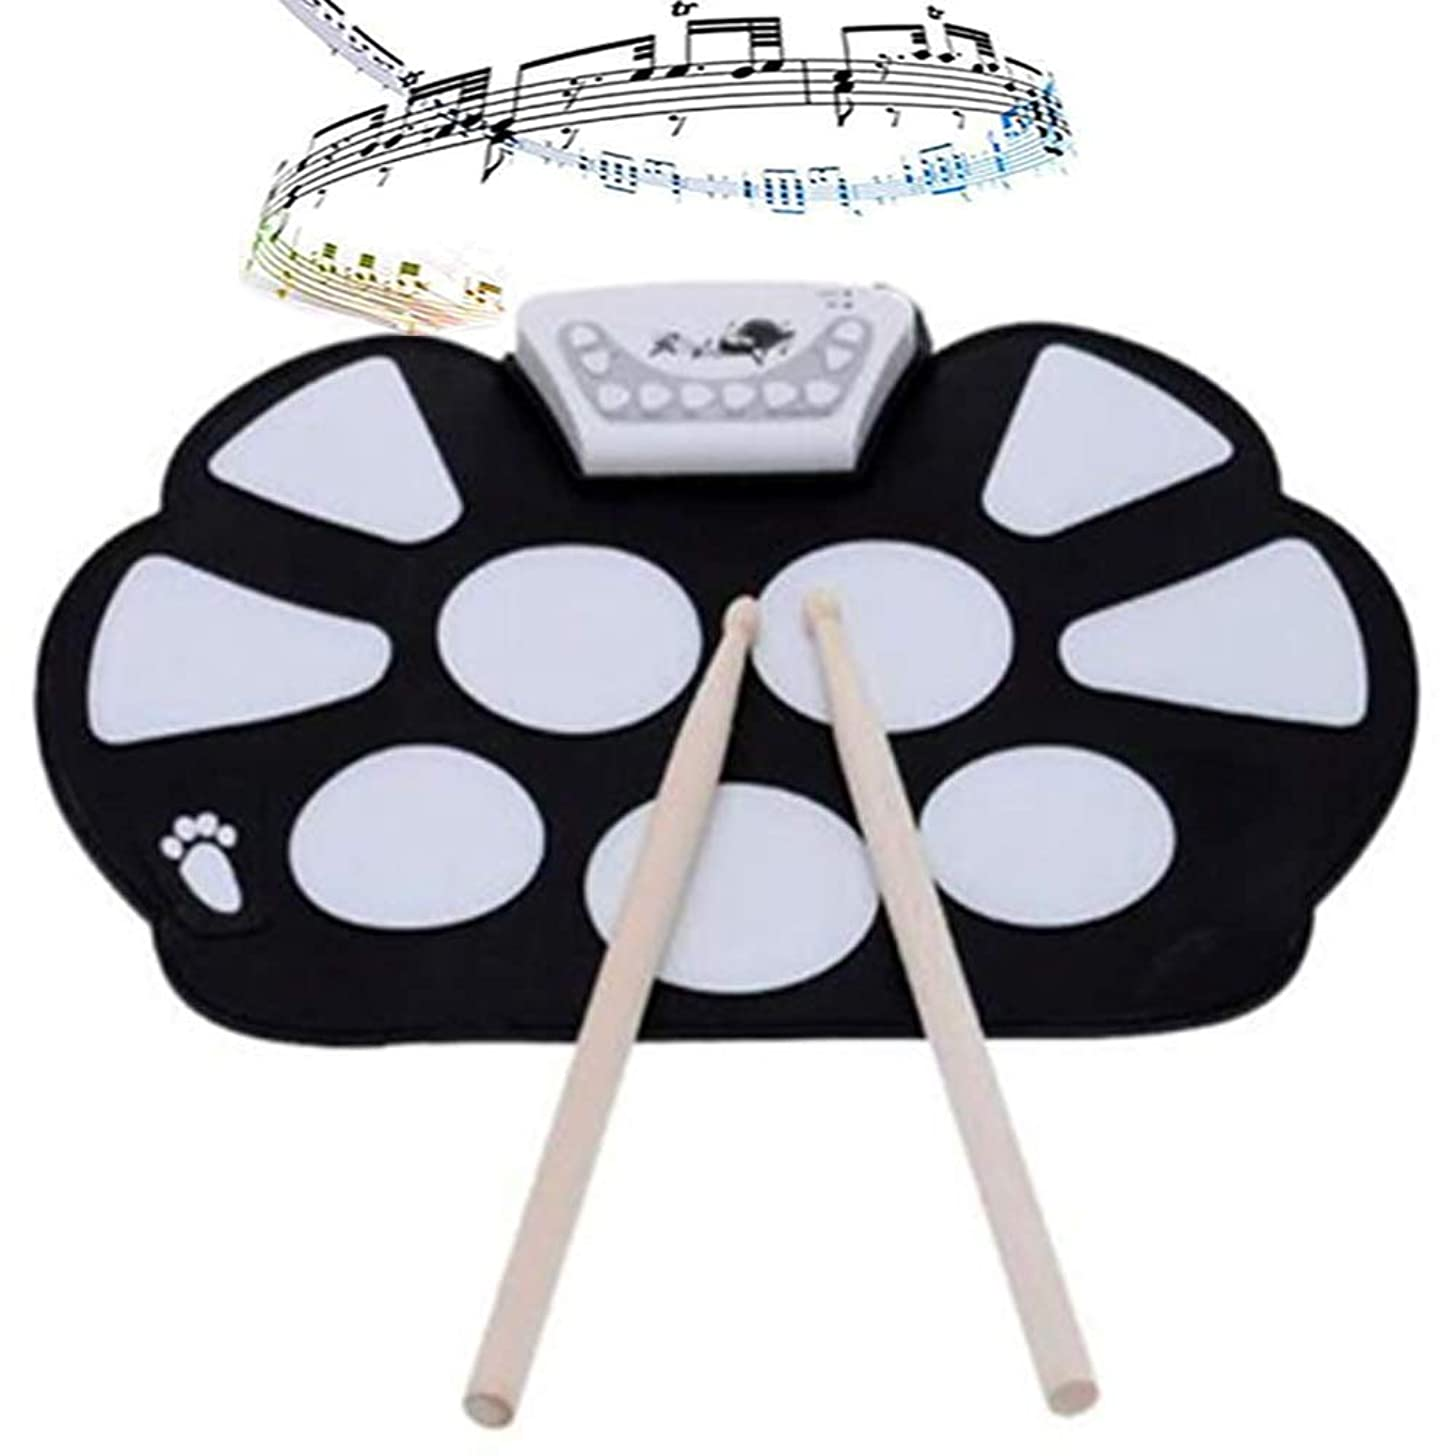 Electric Drum Set, Portable Electronic Roll up Drum Pad Kit Silicon Foldable with Drumsticks for Beginners, Christmas Holiday Birthday Music Instruments